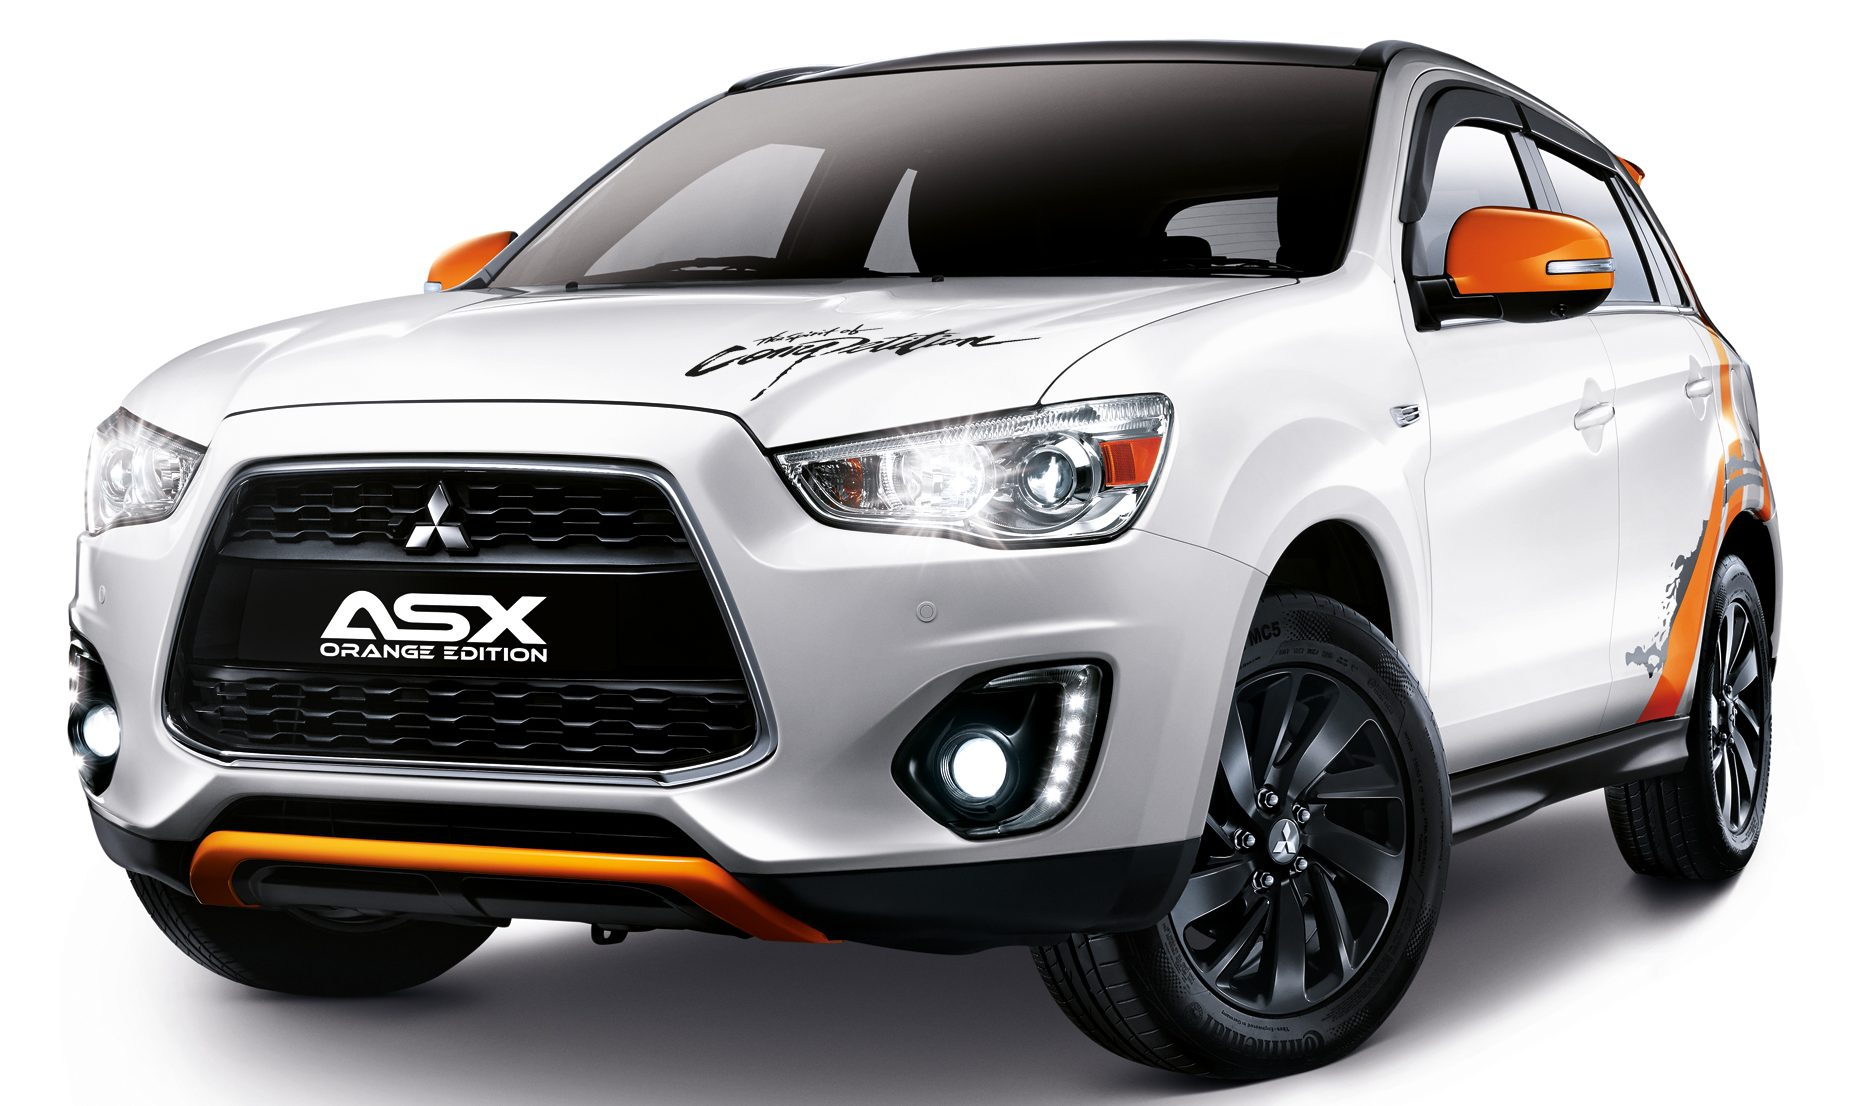 mitsubishi asx orange edition 180 units rm133k